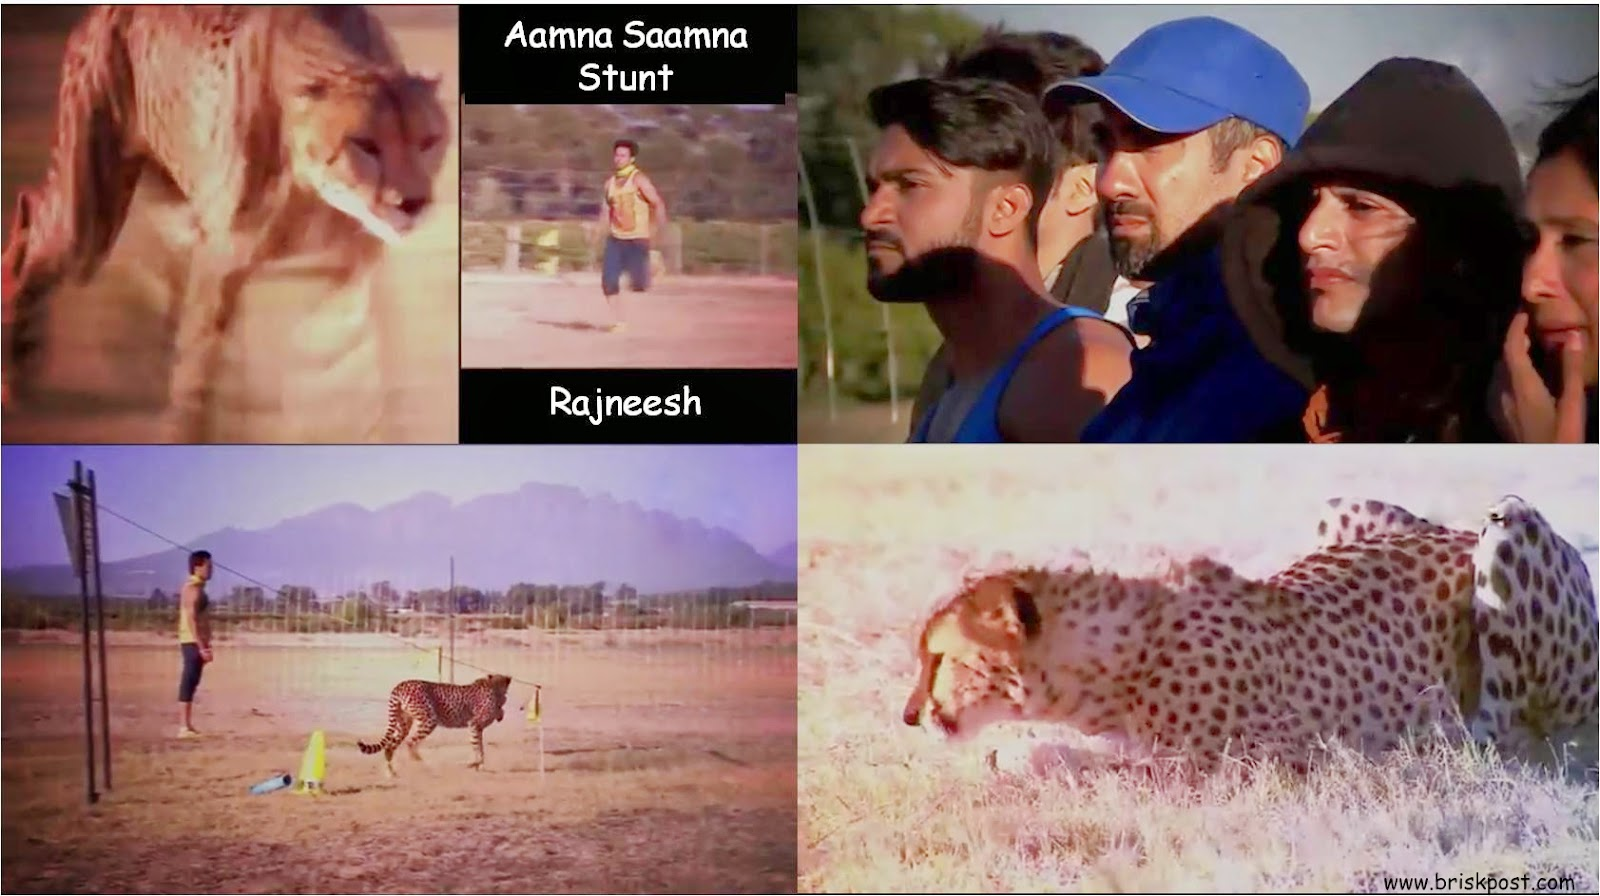 Rajneesh running to face tiger during Fear Factor Khatron Ke Khiladi stunt